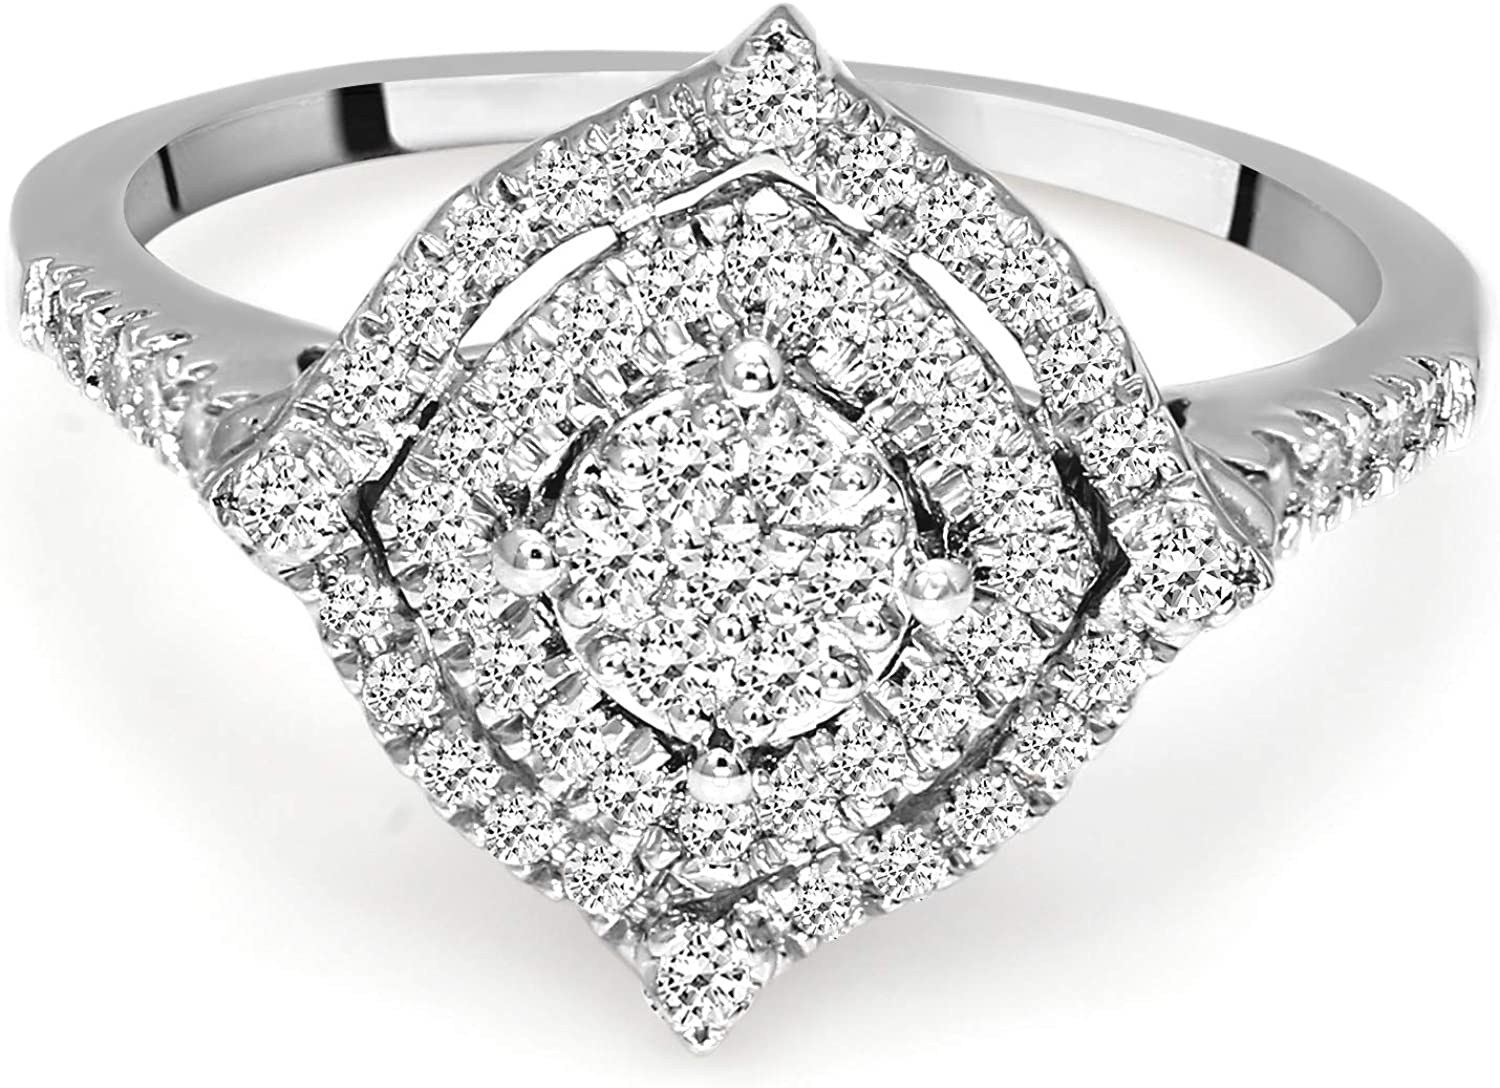 Lab Grown Diamond Ring 10K White Gold 3/8 carat Lab Created Diamond Square shaped Halo Engagement Ring For Women (3/8 CTTW, GH Color, SI Clarity Diamond Jewelry For Women)